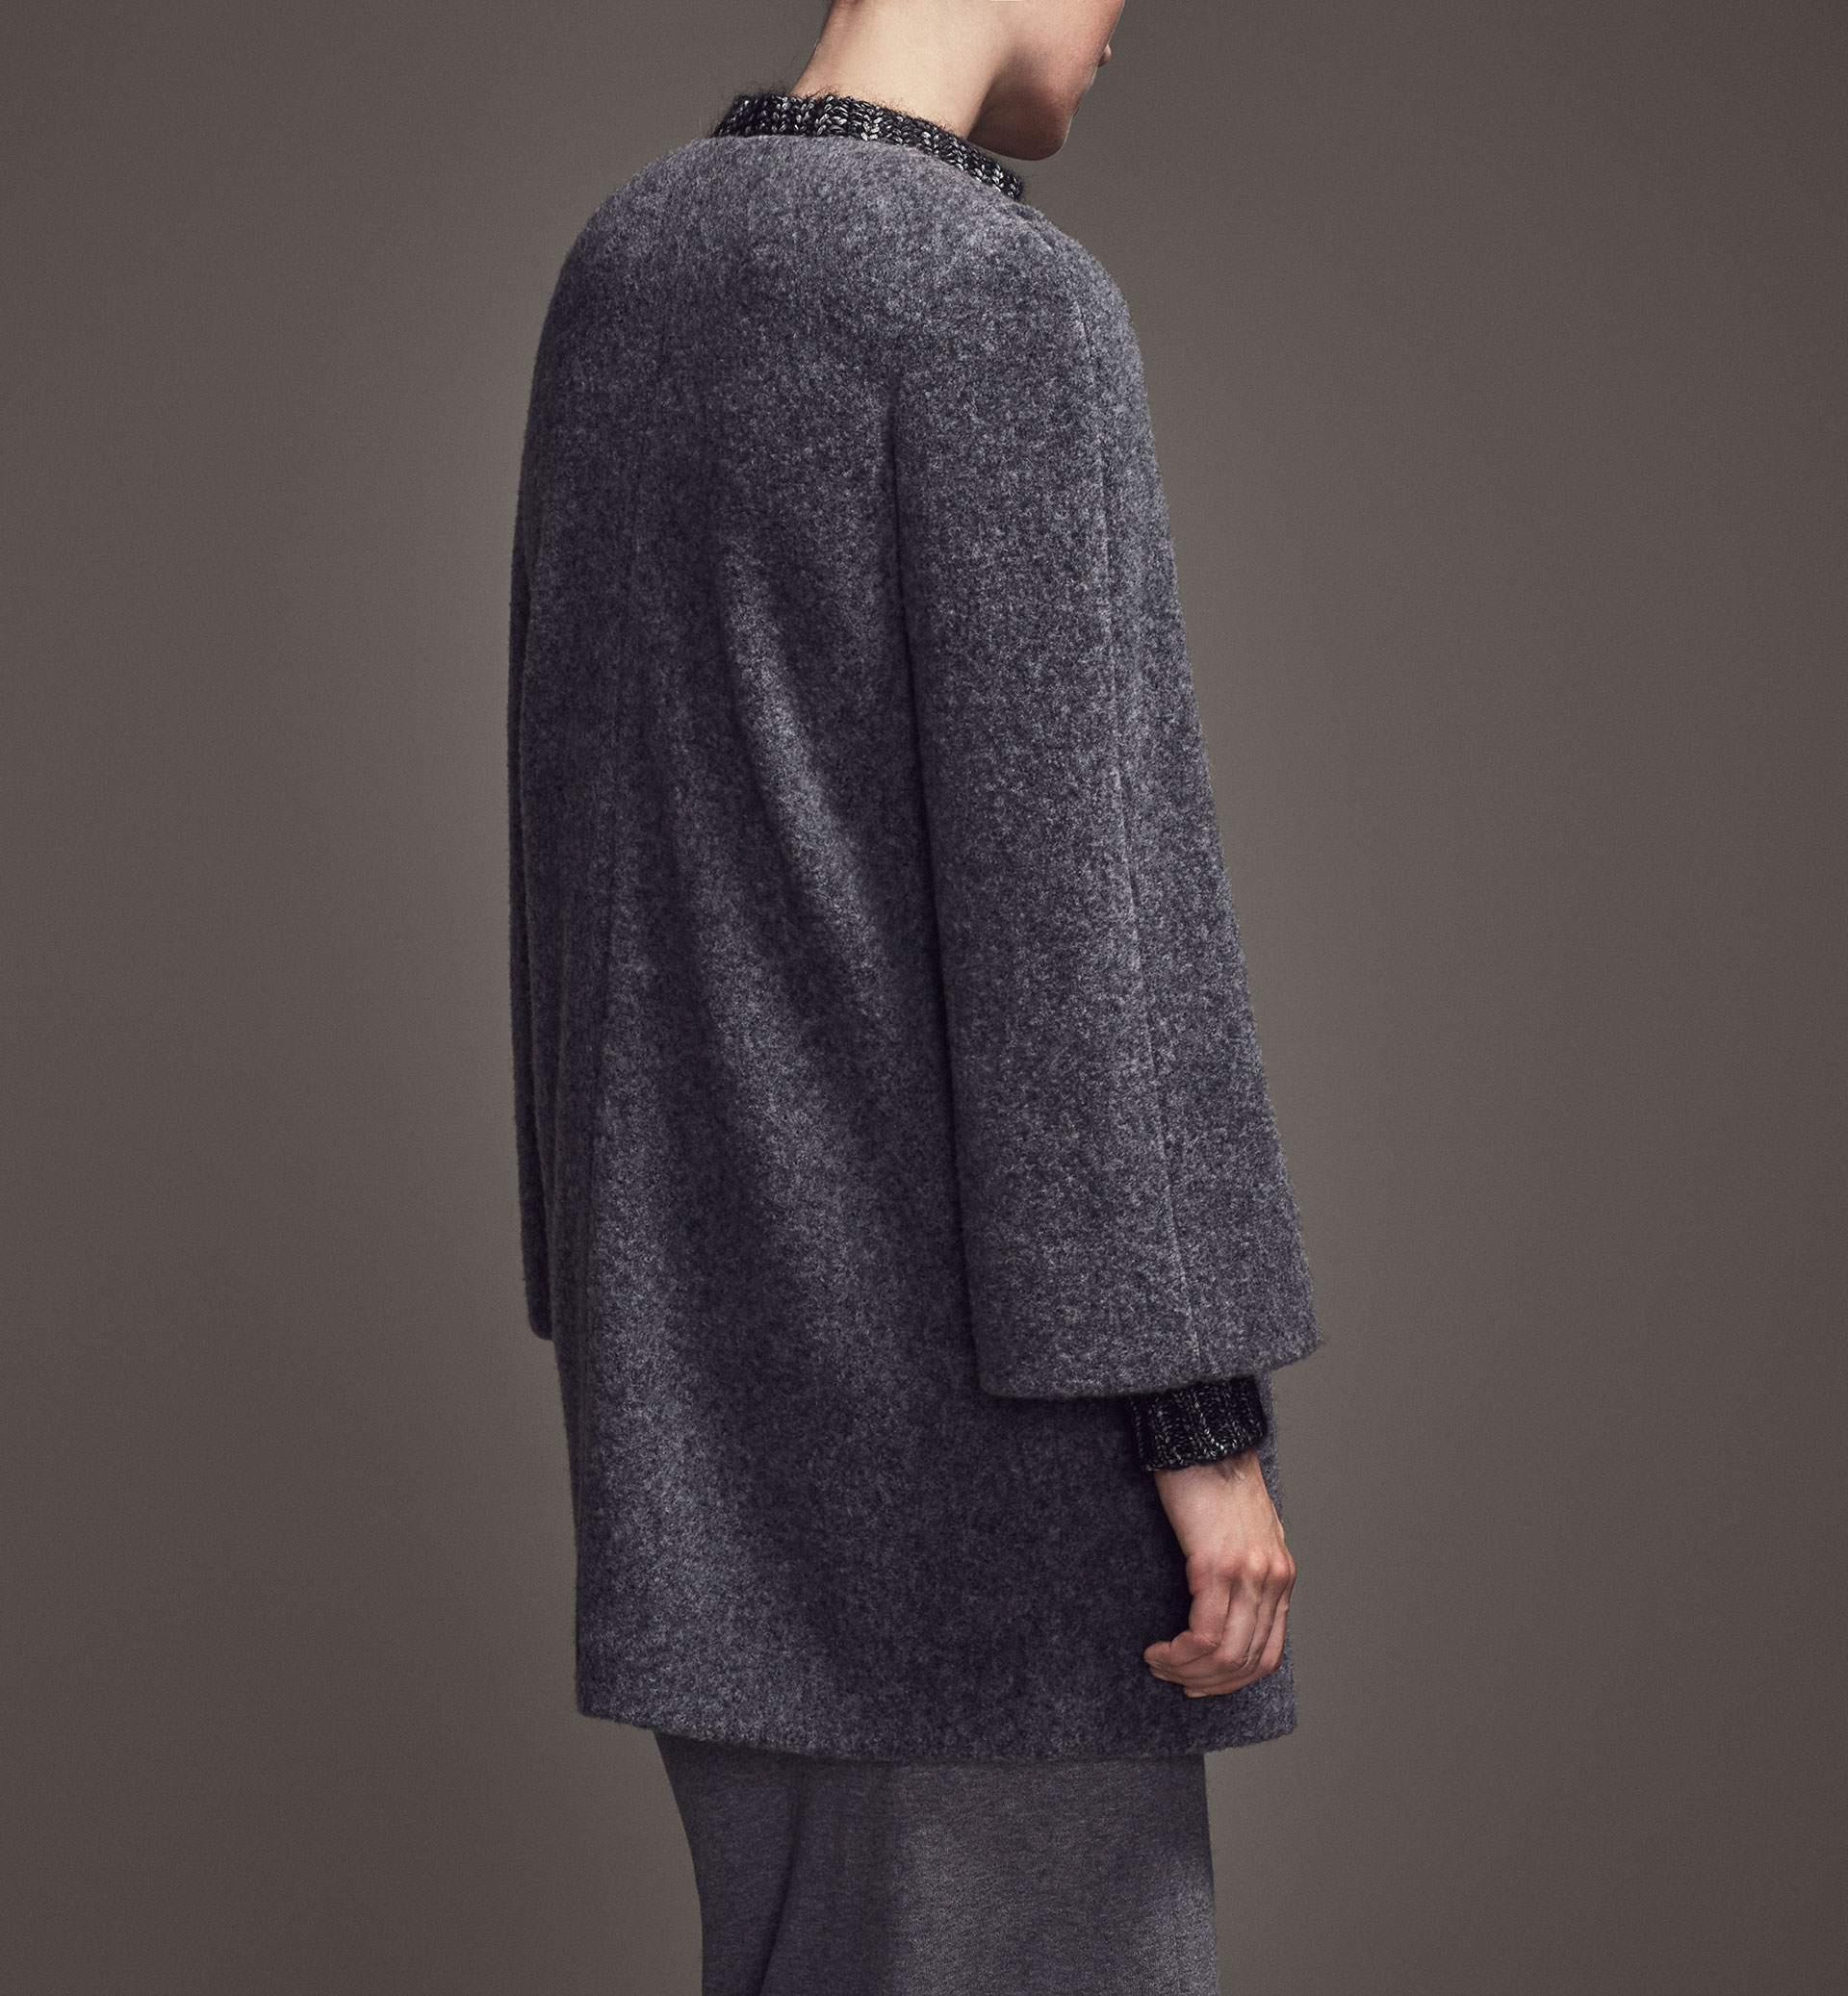 LIMITED EDITION OPEN GREY COAT